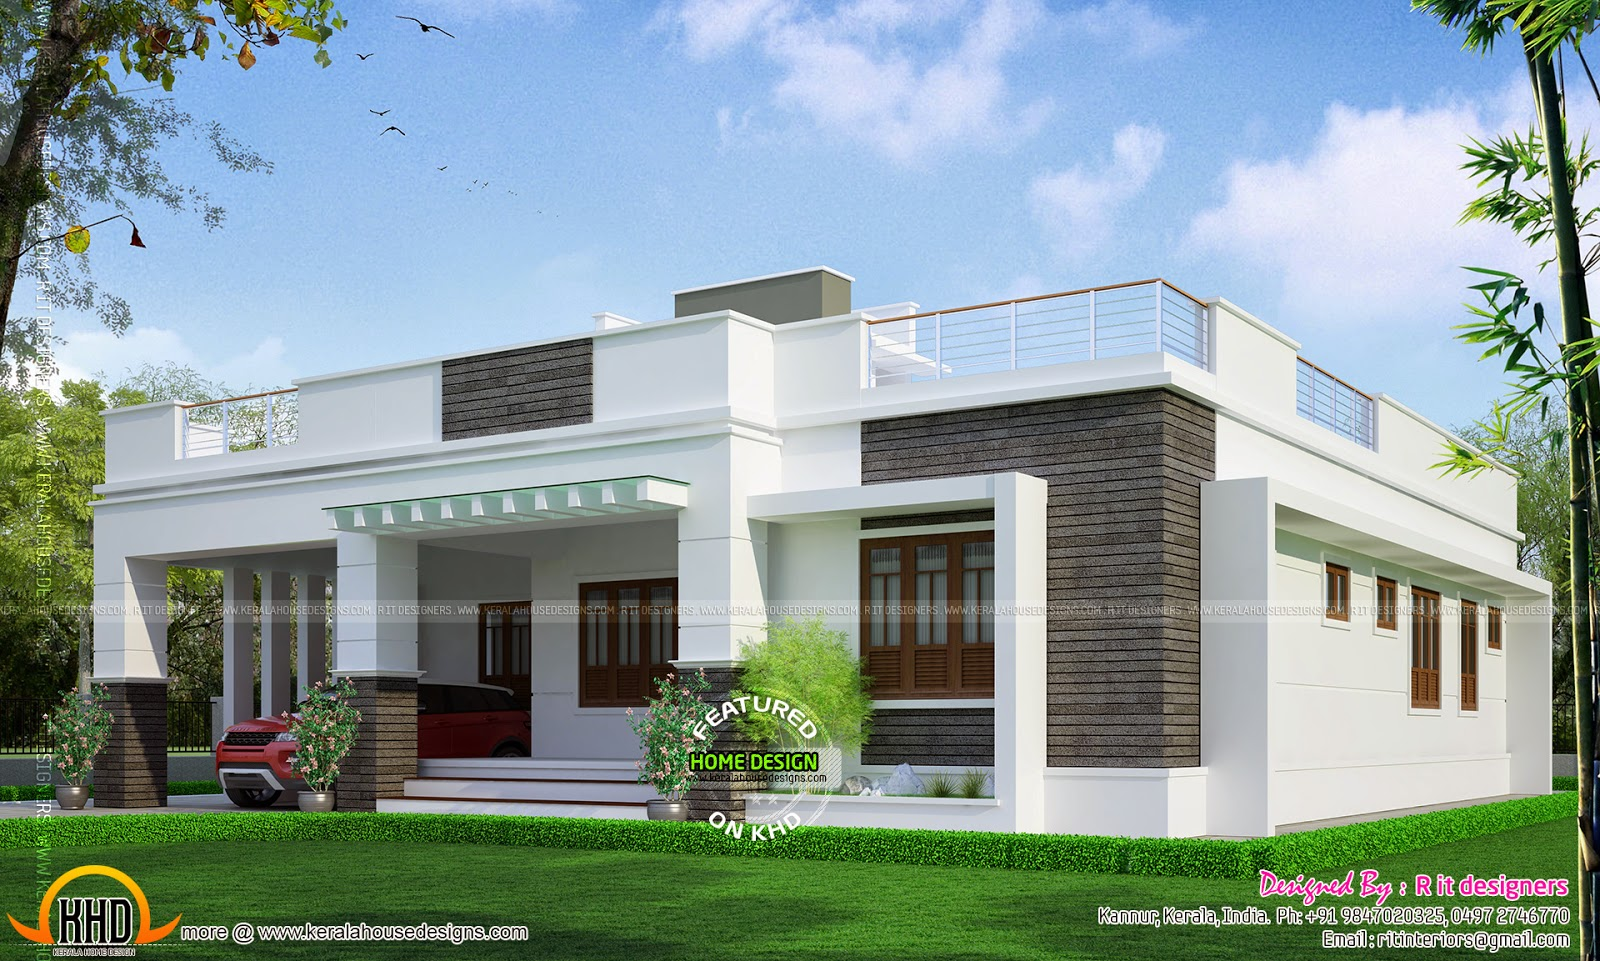 Elegant single floor house design kerala home design and for Elegant home designs